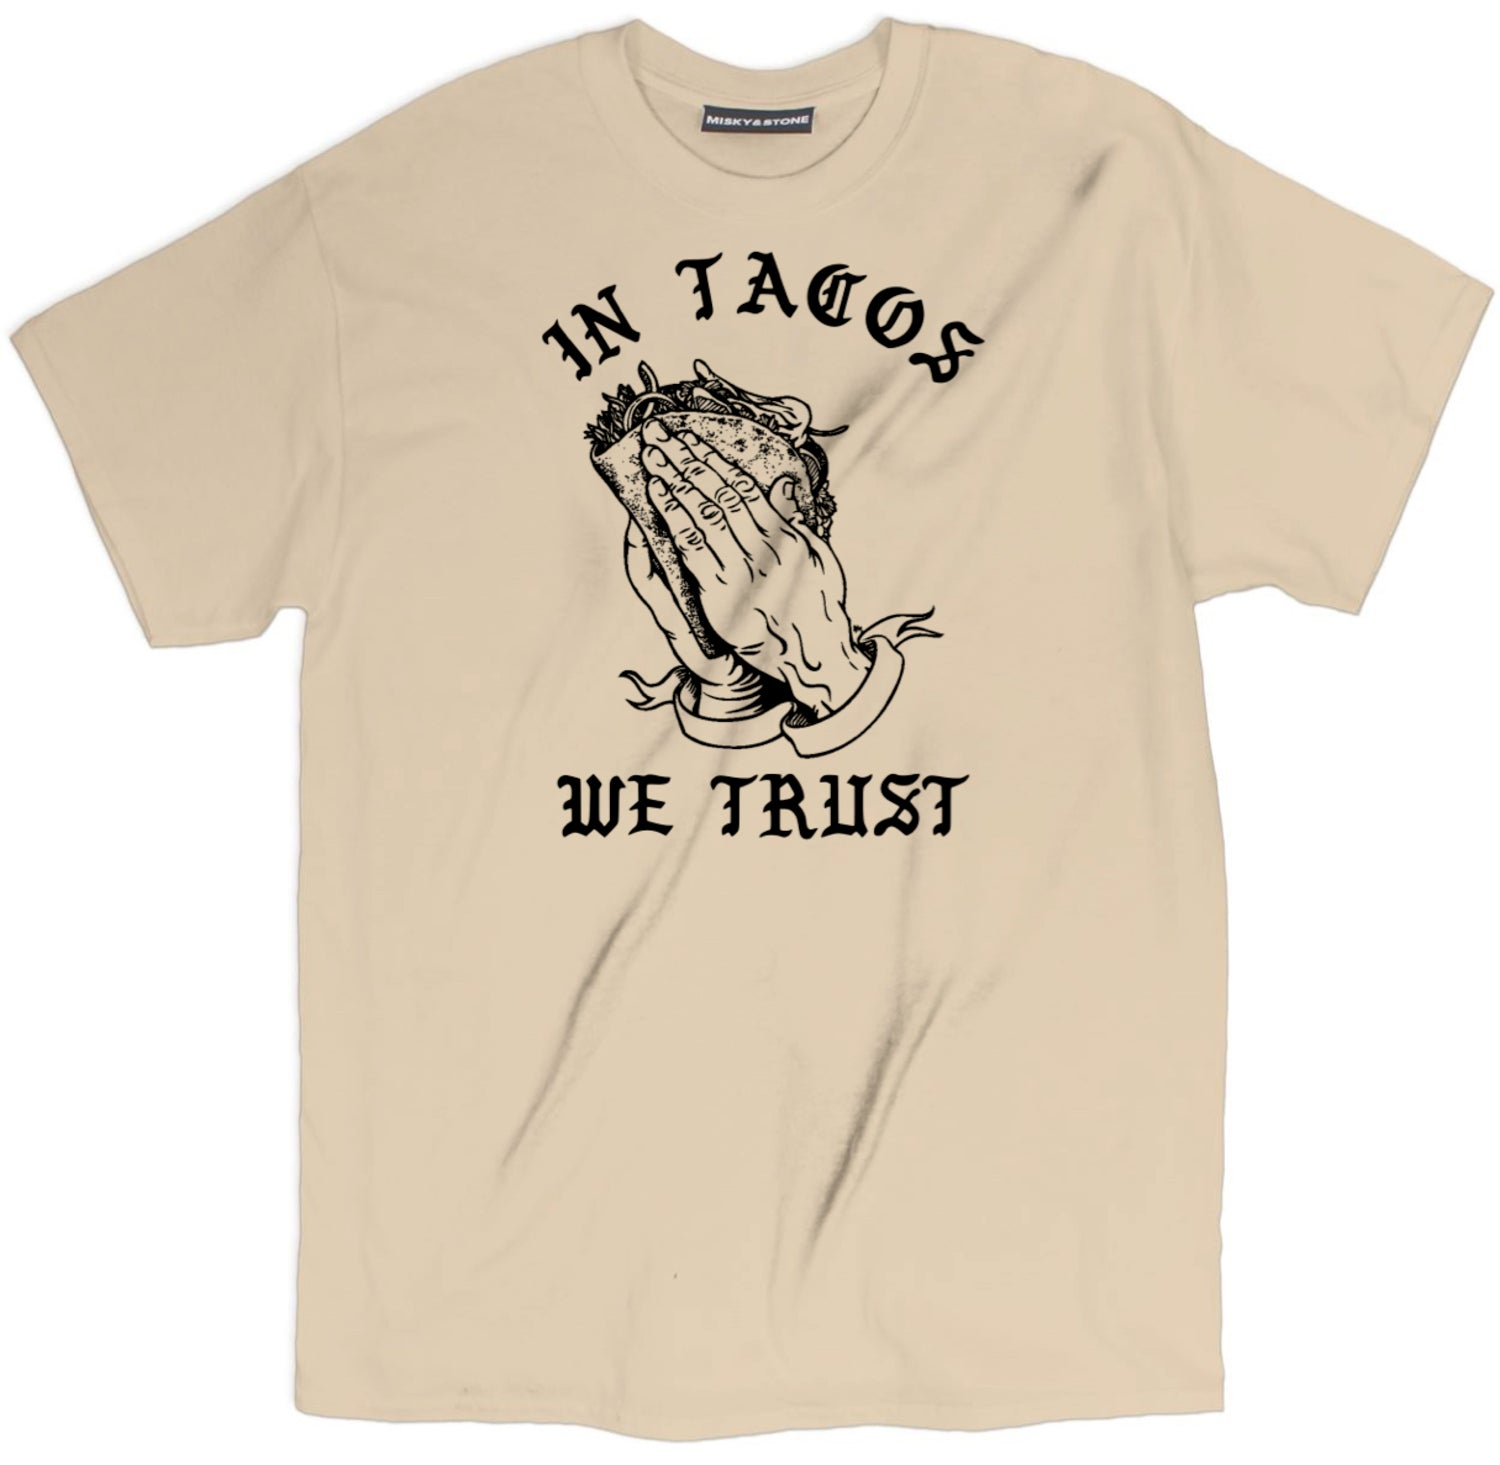 funny in tacos we trust, pray for tacos t shirt, taco shirts, taco t shirt, funny taco shirts, cute taco shirts, taco tee shirts, taco tee, taco apparel